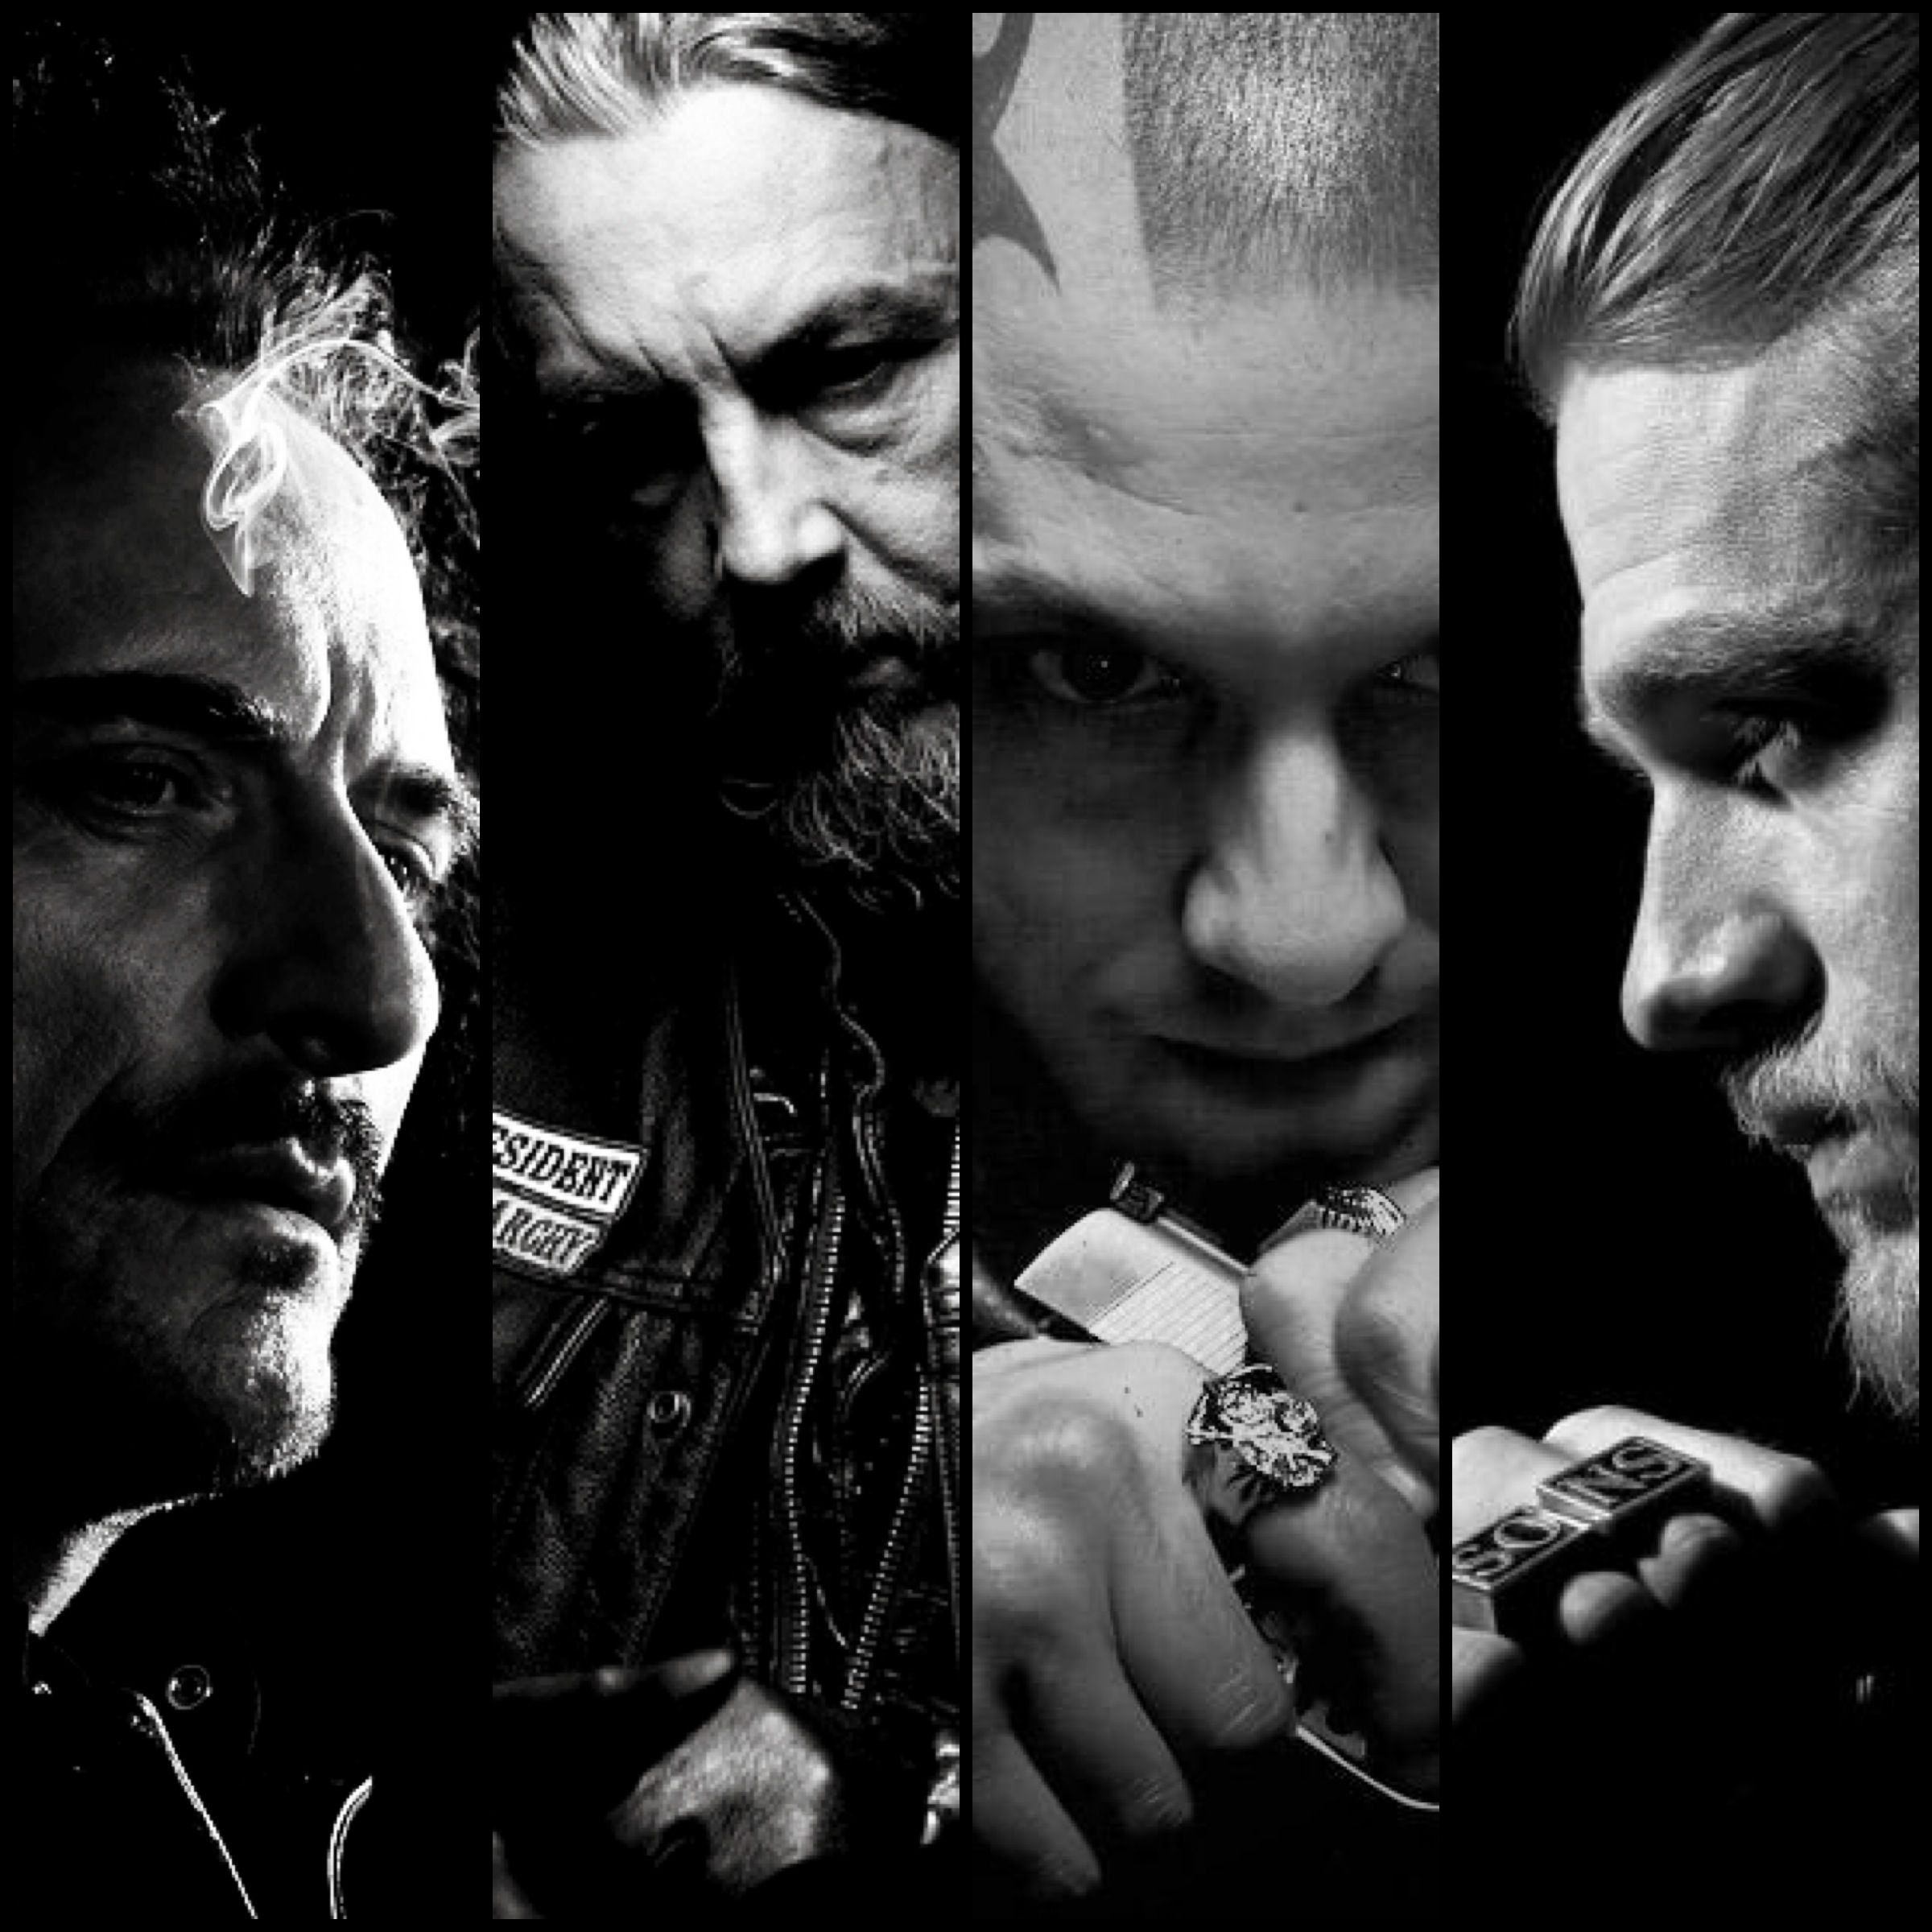 Tig / Kim Coates / Chibs / Tommy Flanagan / Juice / Theo Rossi / Jax / Charlie Hunnam / Sons of Anarchy